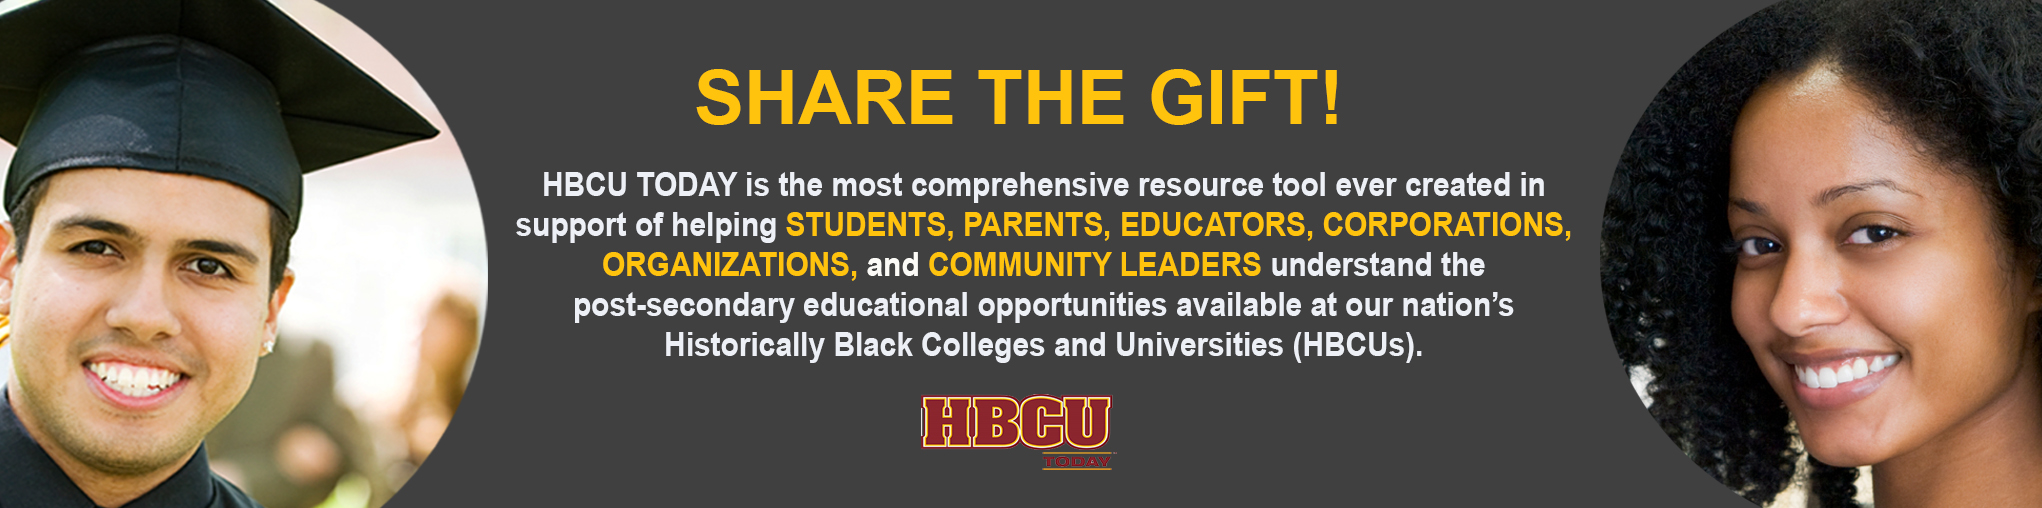 Share the Gift of HBCU Today!